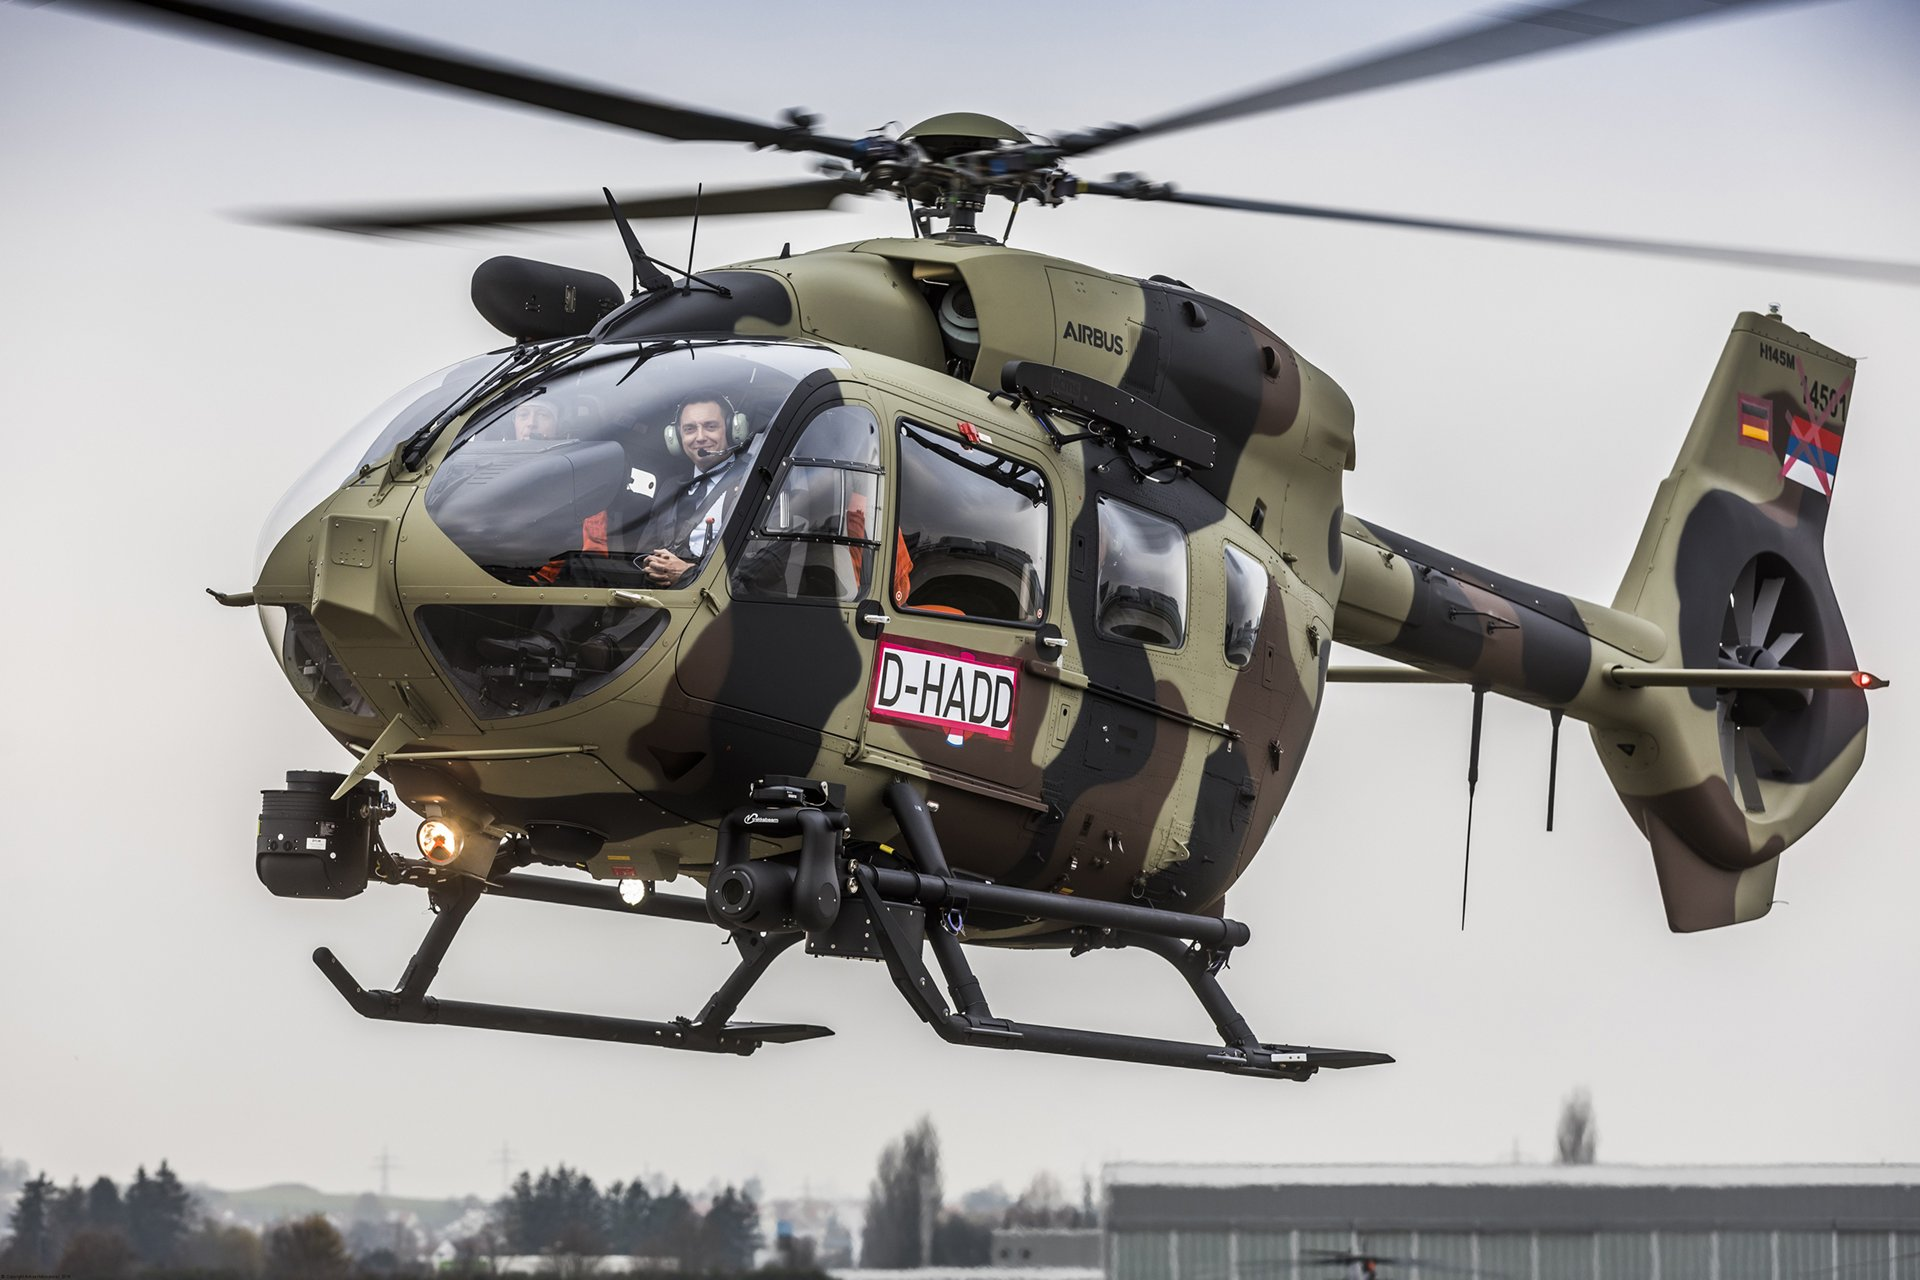 The Serbian aircraft will be equipped with a fast roping system, high-performance camera, fire support equipment, ballistic protection as well as an electronic countermeasures system to support the most demanding operational requirements.